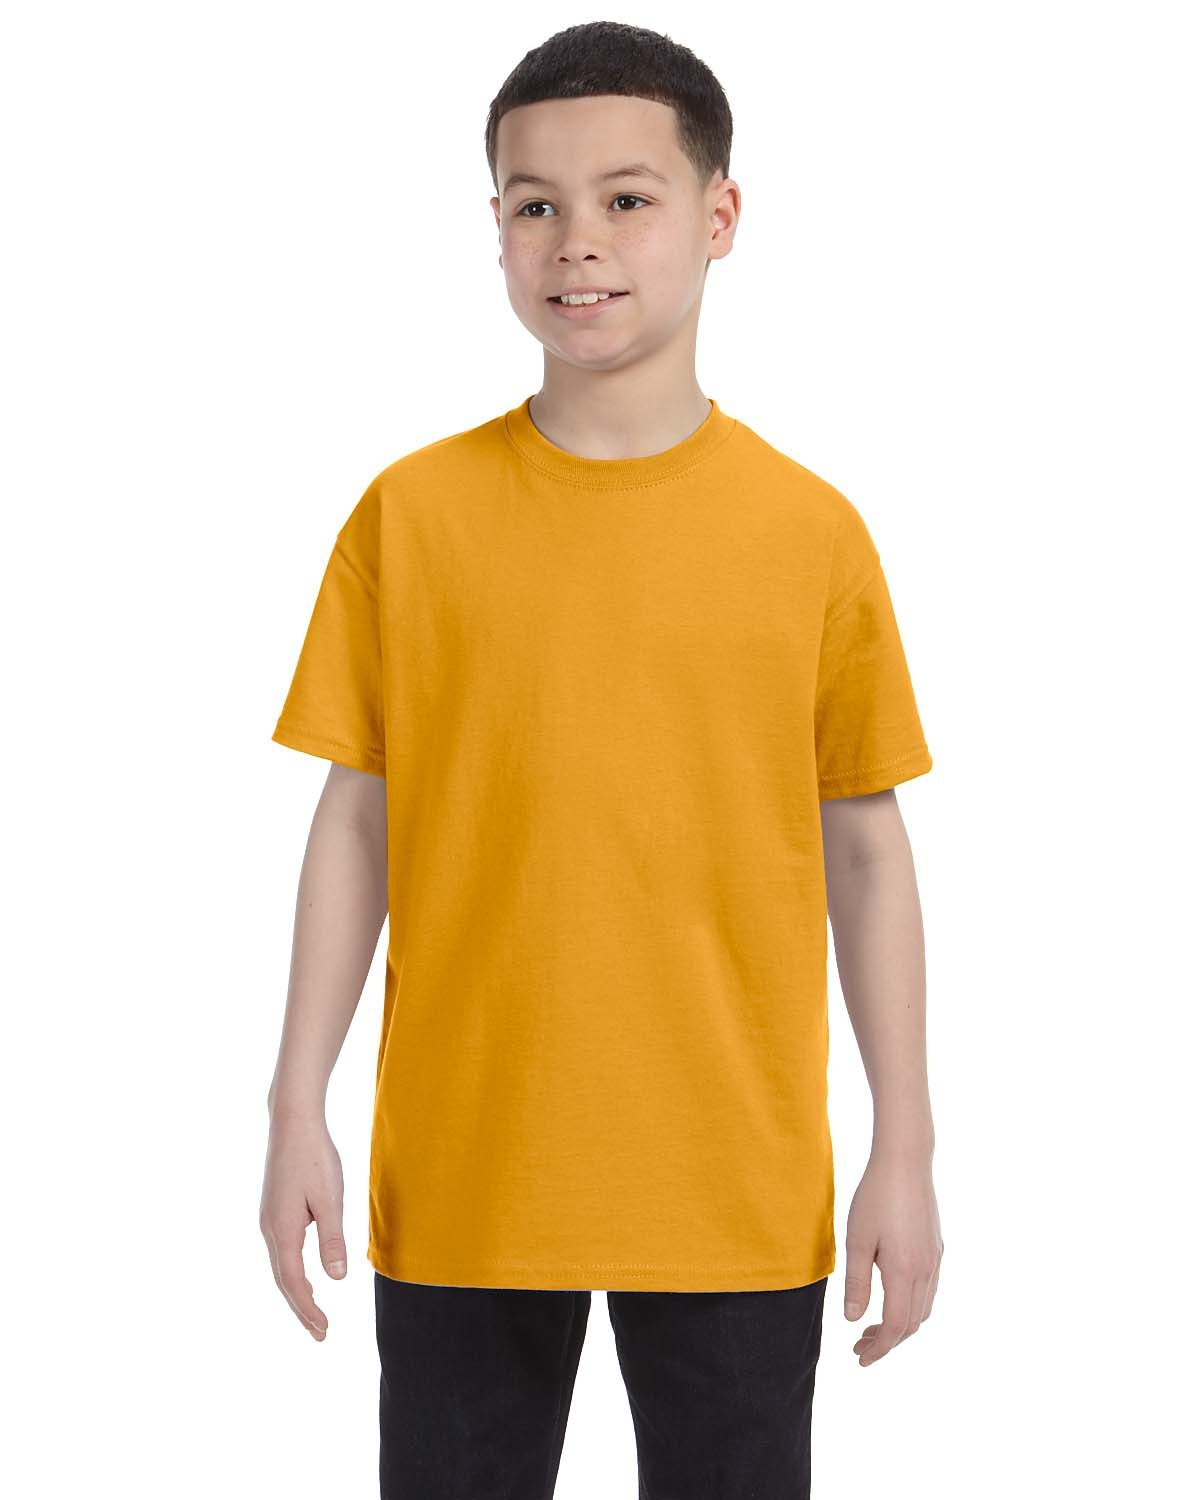 Hanes Youth Authentic-T T-Shirt GOLD